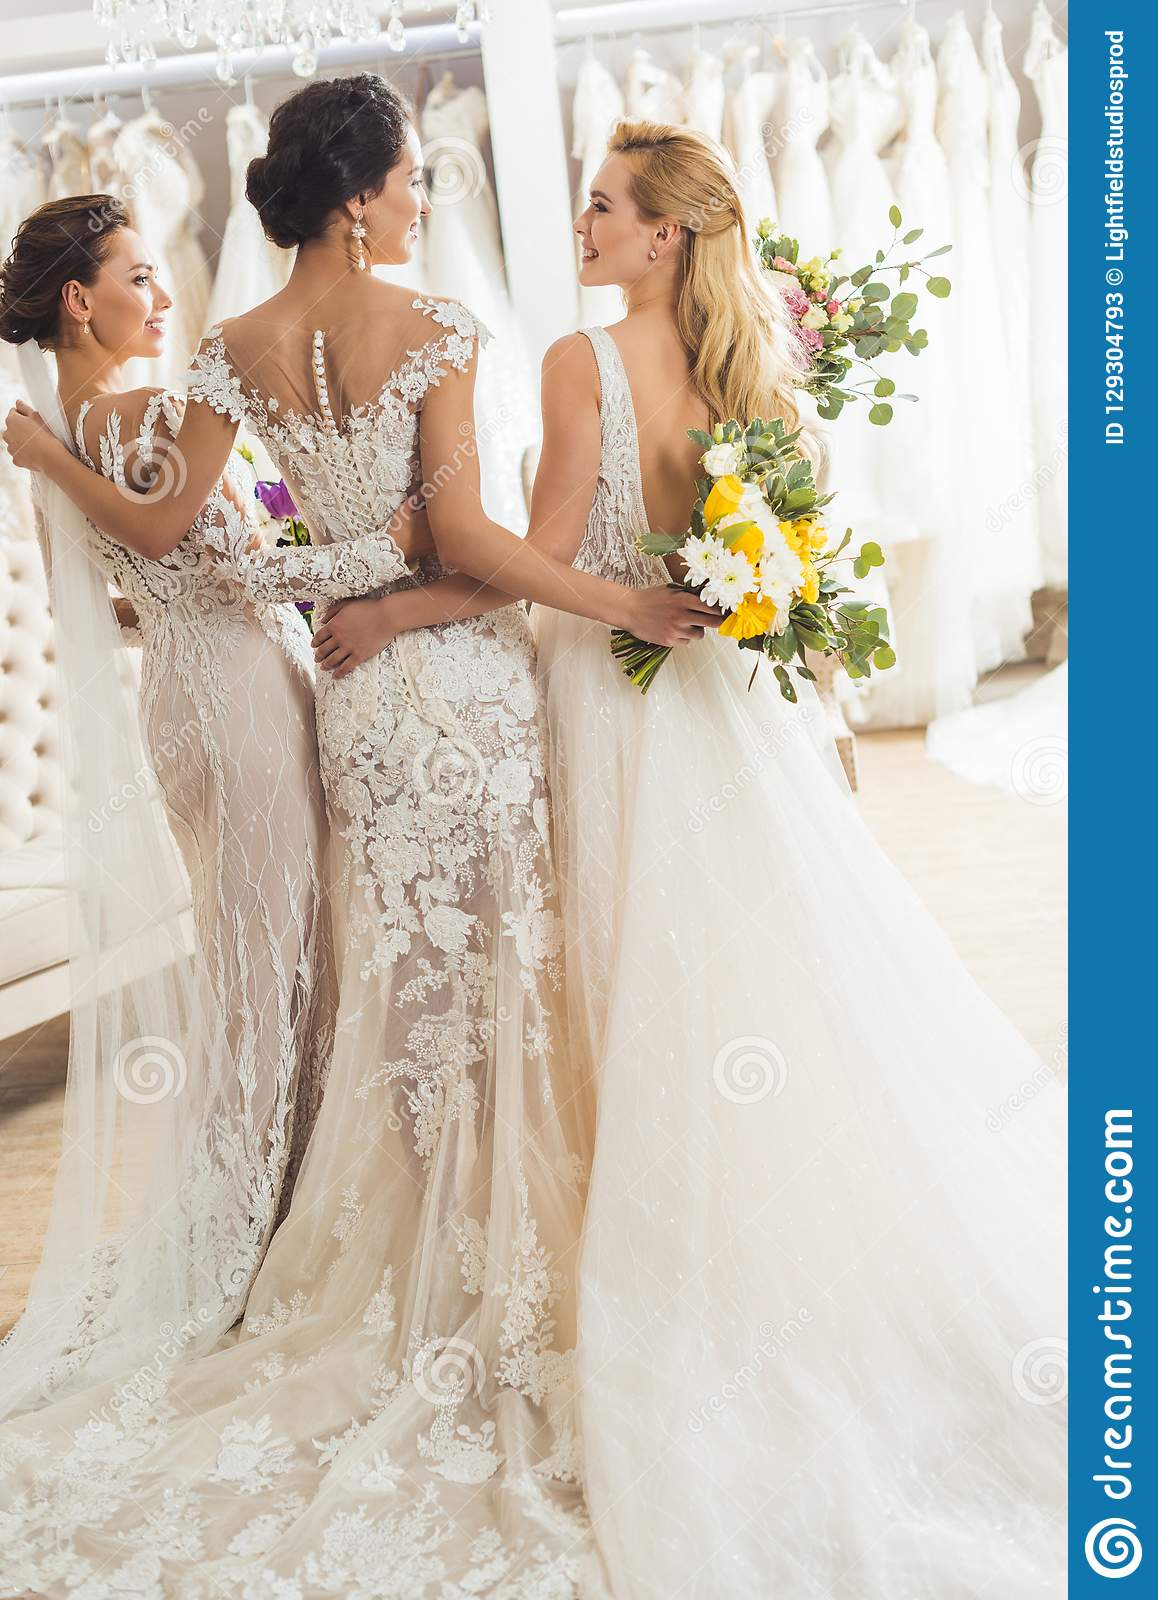 Attractive Women In Wedding Dresses Embracing In Wedding Stock Image Image Of Beauty Styling 129304793,Miami Wedding Dress